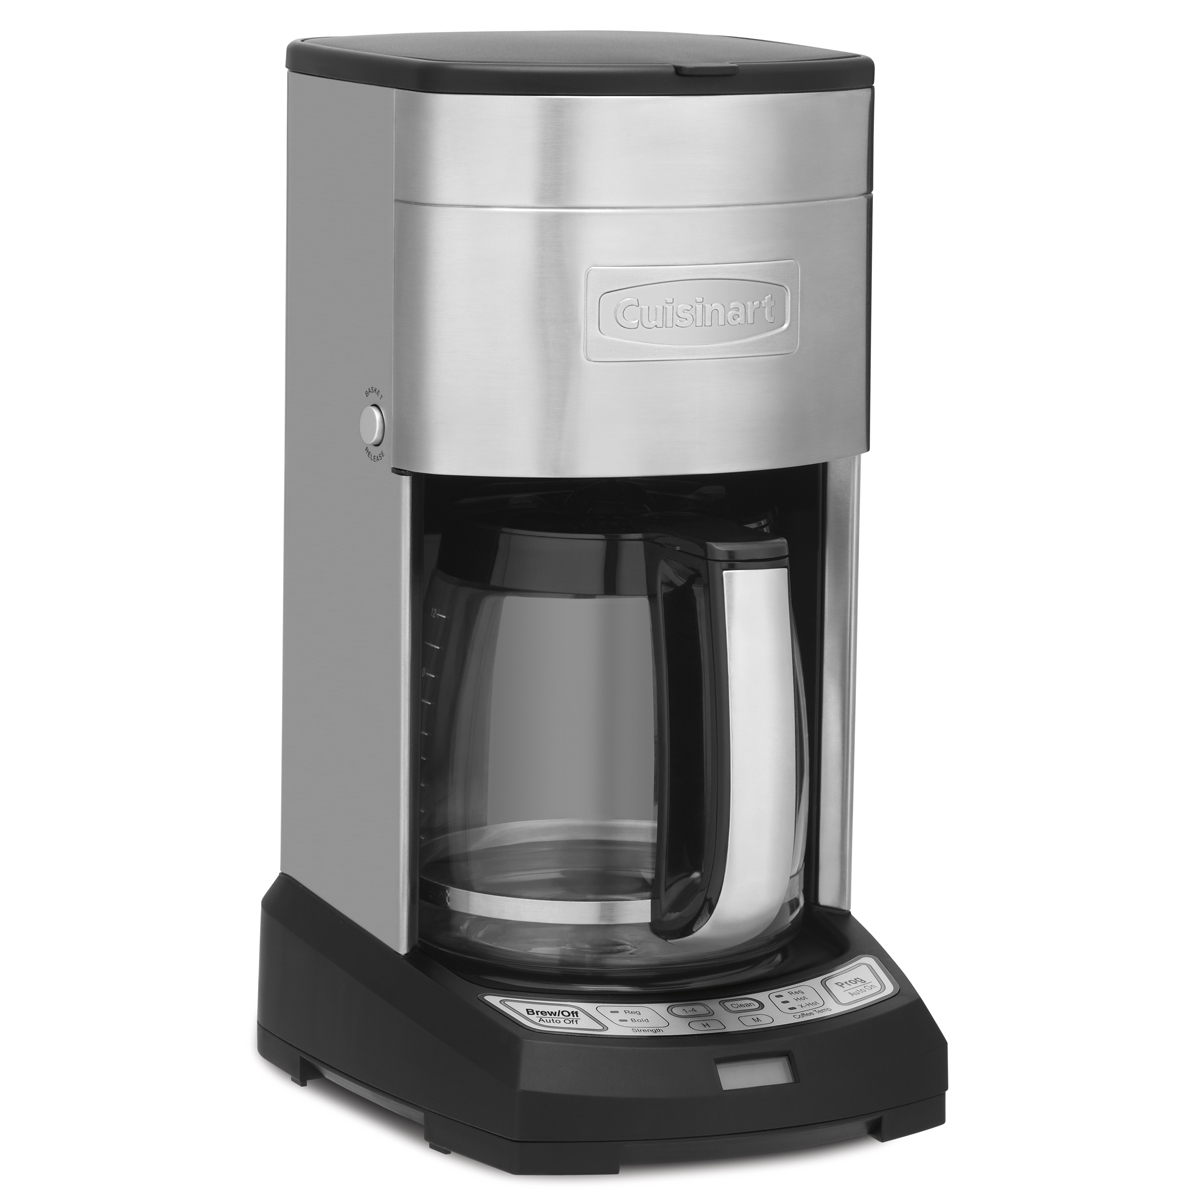 Cuisinart K Cup Coffee Maker Instructions : Extreme Brew 12-Cup Coffee Maker Cuisinart